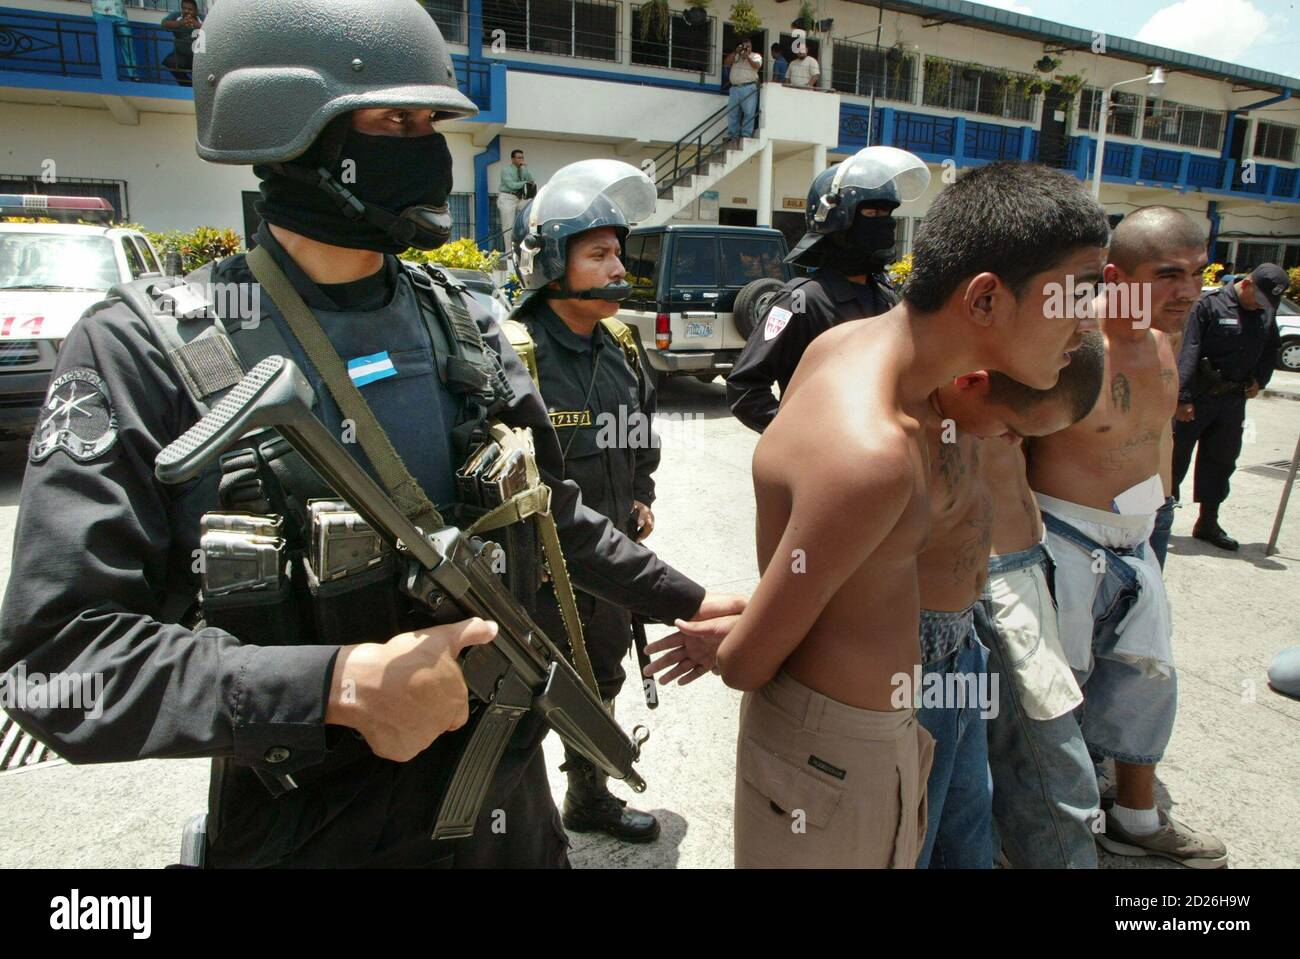 Gang members are escorted after being captured by riot police in San Salvador September 8, 2005. Authorities announced that the Simultaneous International Anti-Gang Operations in five different countries - Mexico, Guatemala, El Salvador, Honduras and the United States - have netted some 660 suspects. REUTERS/Luis Galdamez  LG/CCK Stock Photo